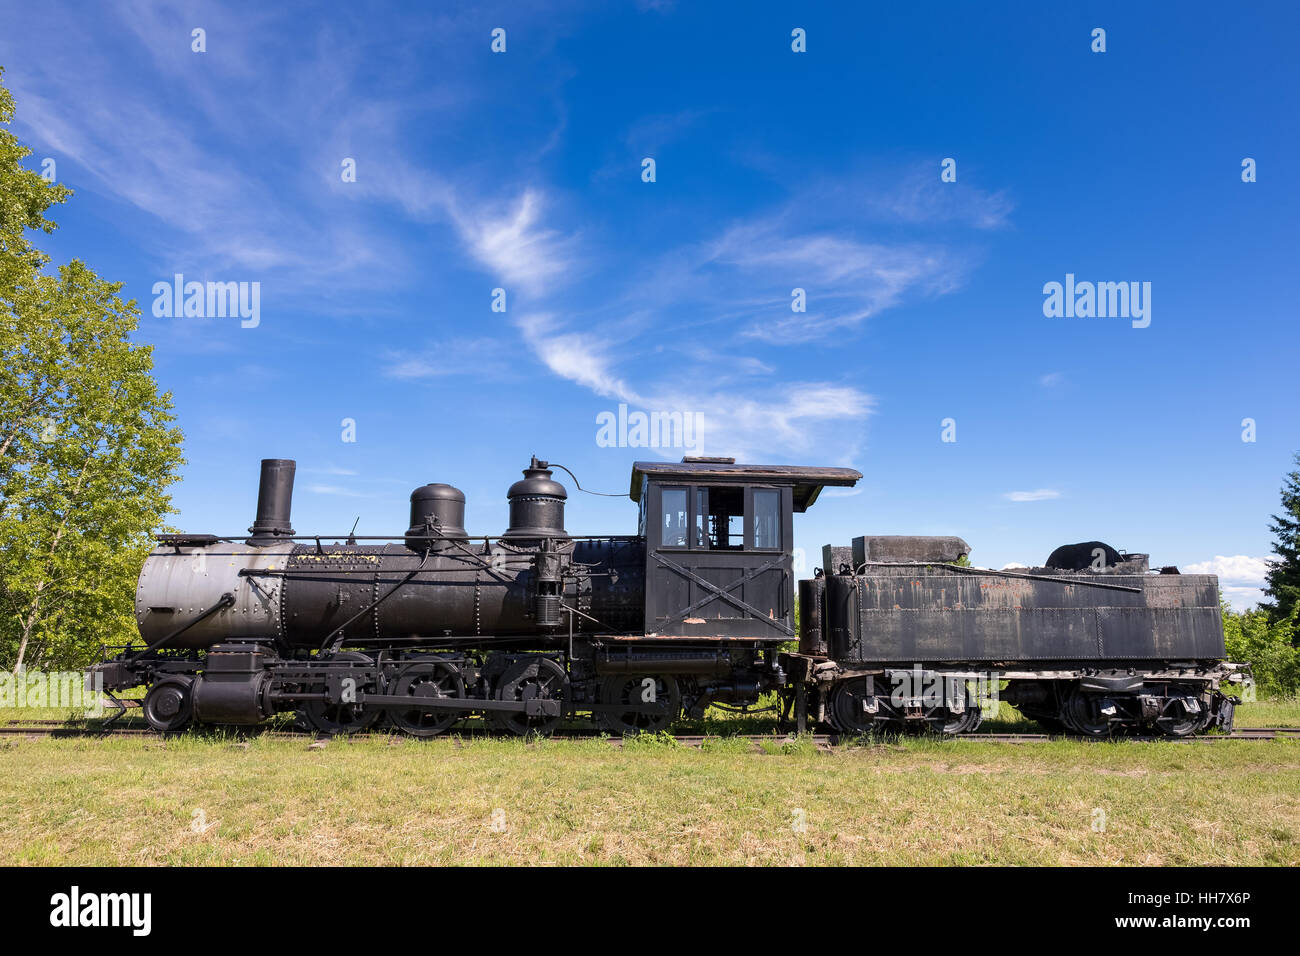 Dramatic View Of An Old Steam Train Engine. Abandoned